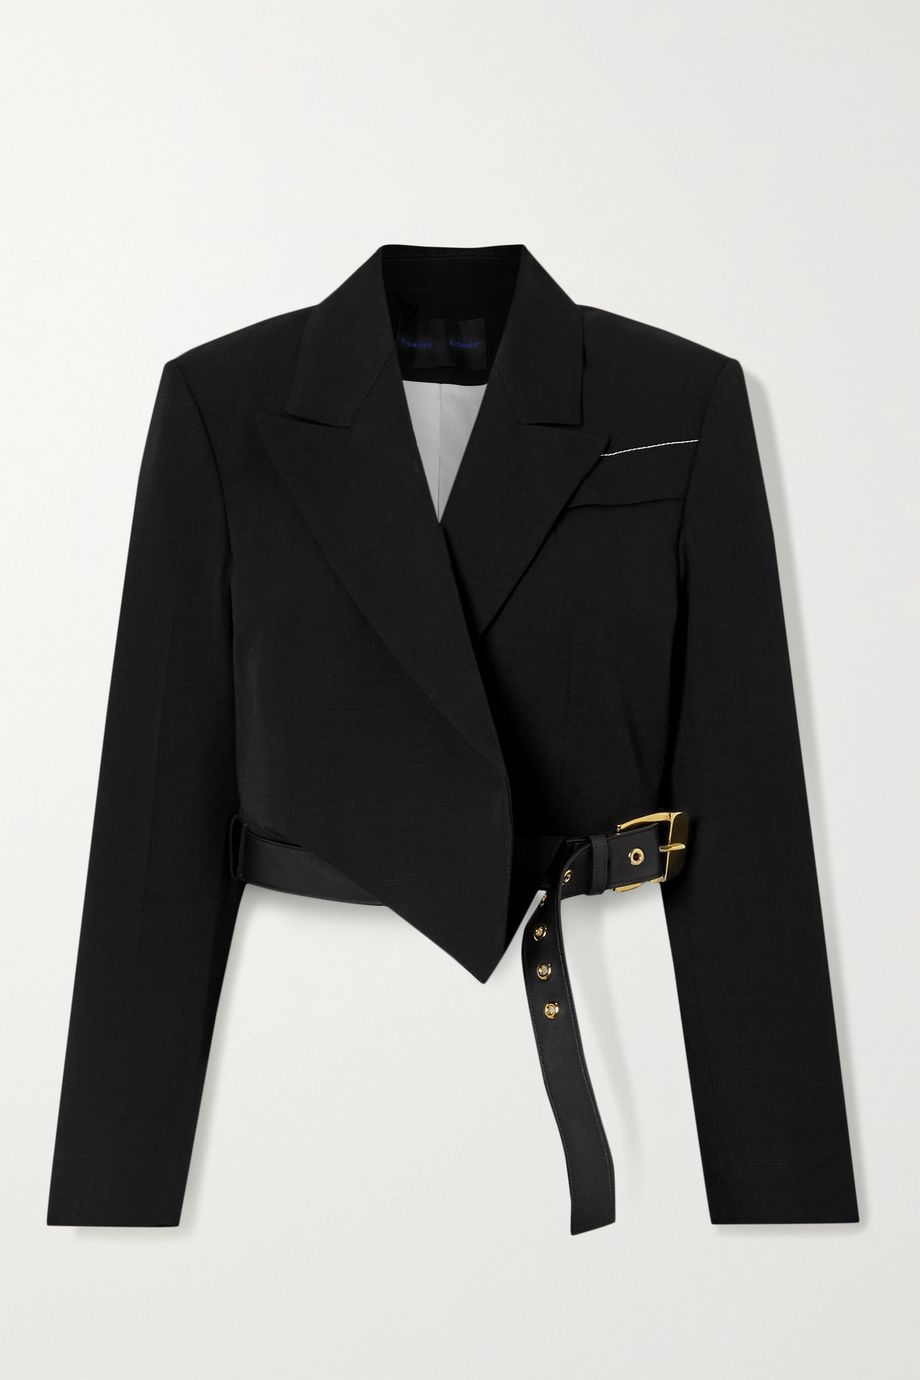 Proenza Schouler Cropped leather-trimmed woven blazer